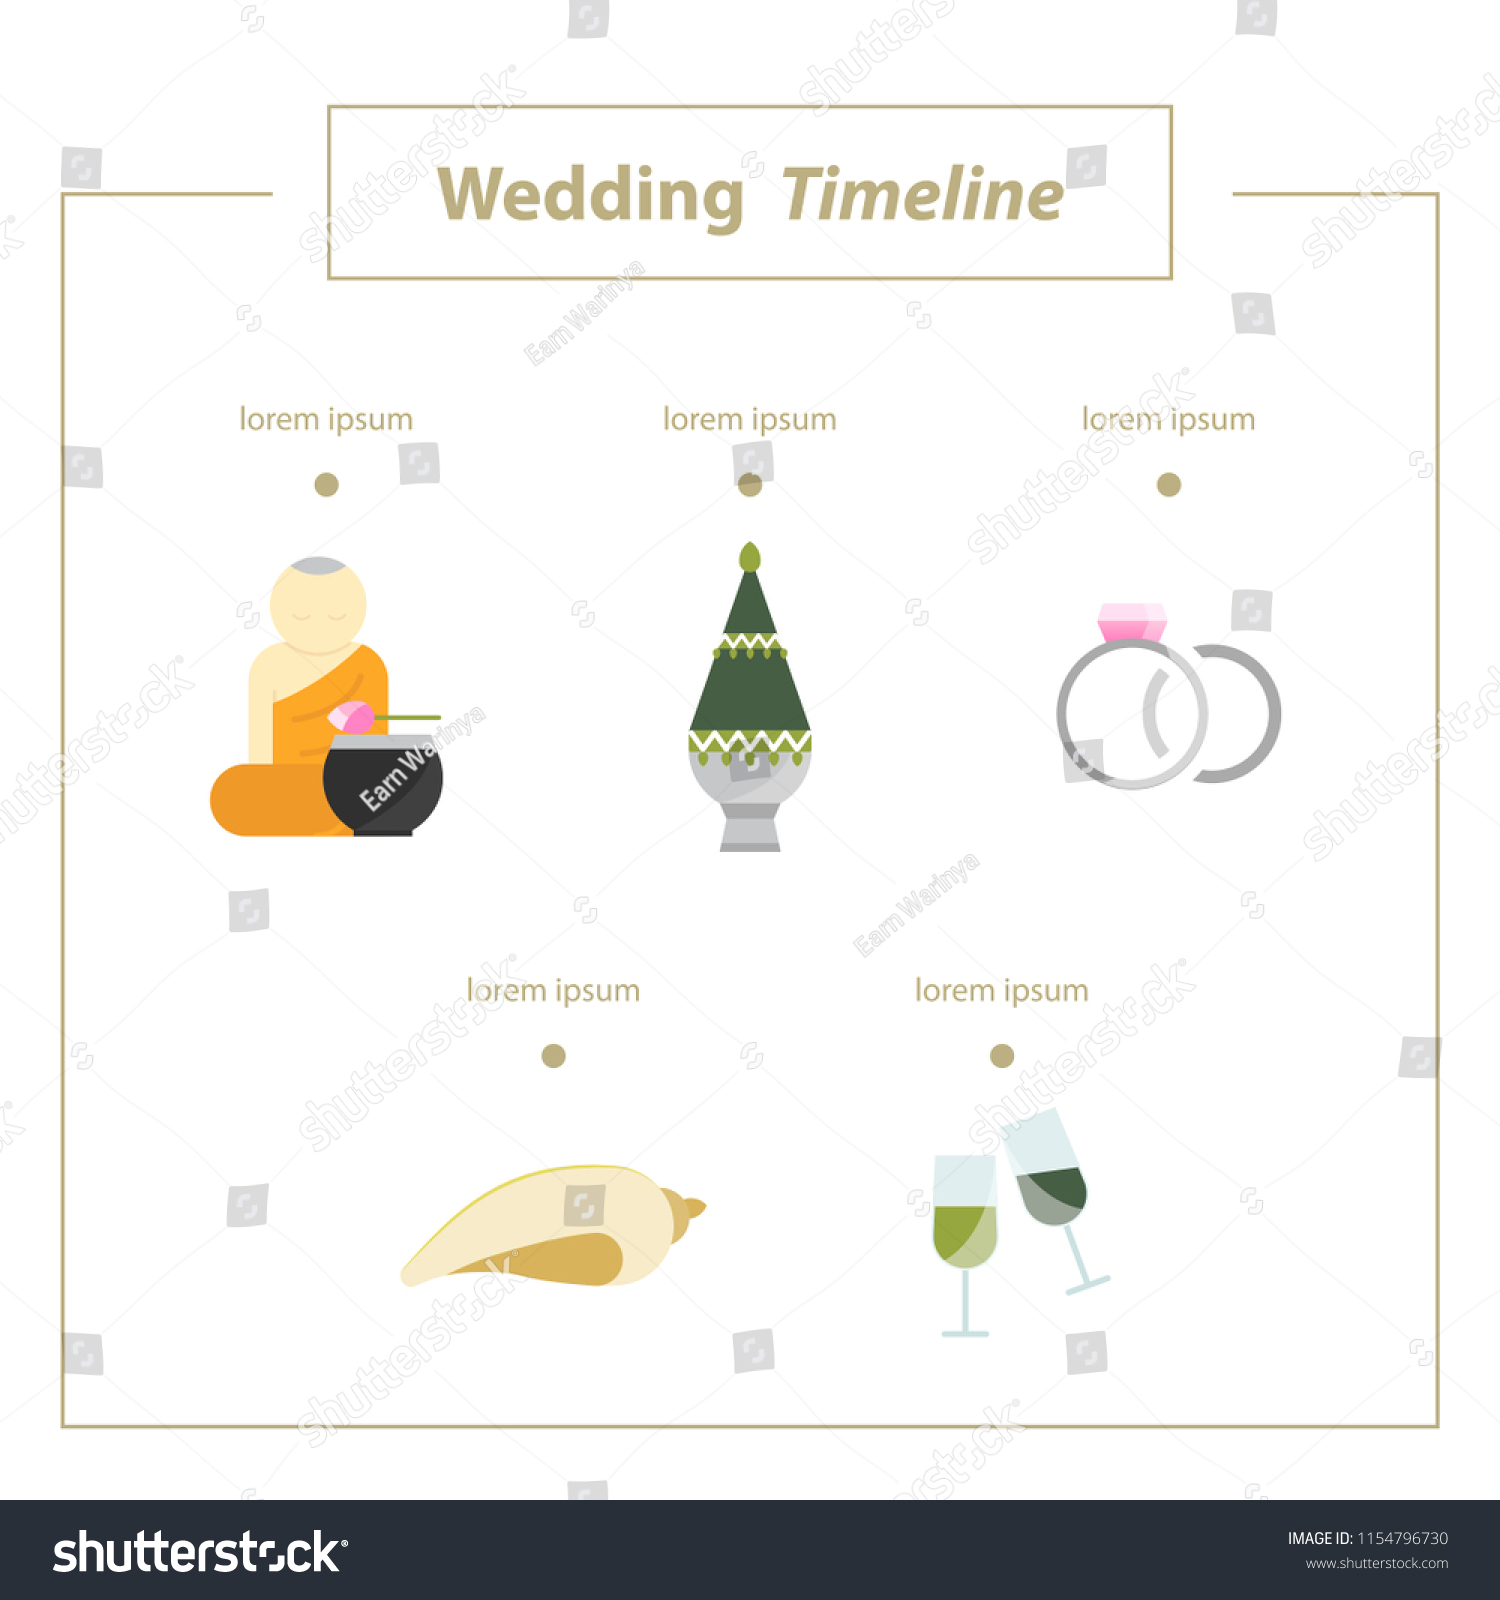 Wedding Timeline Icons Set Stock Vector Royalty Free 1154796730